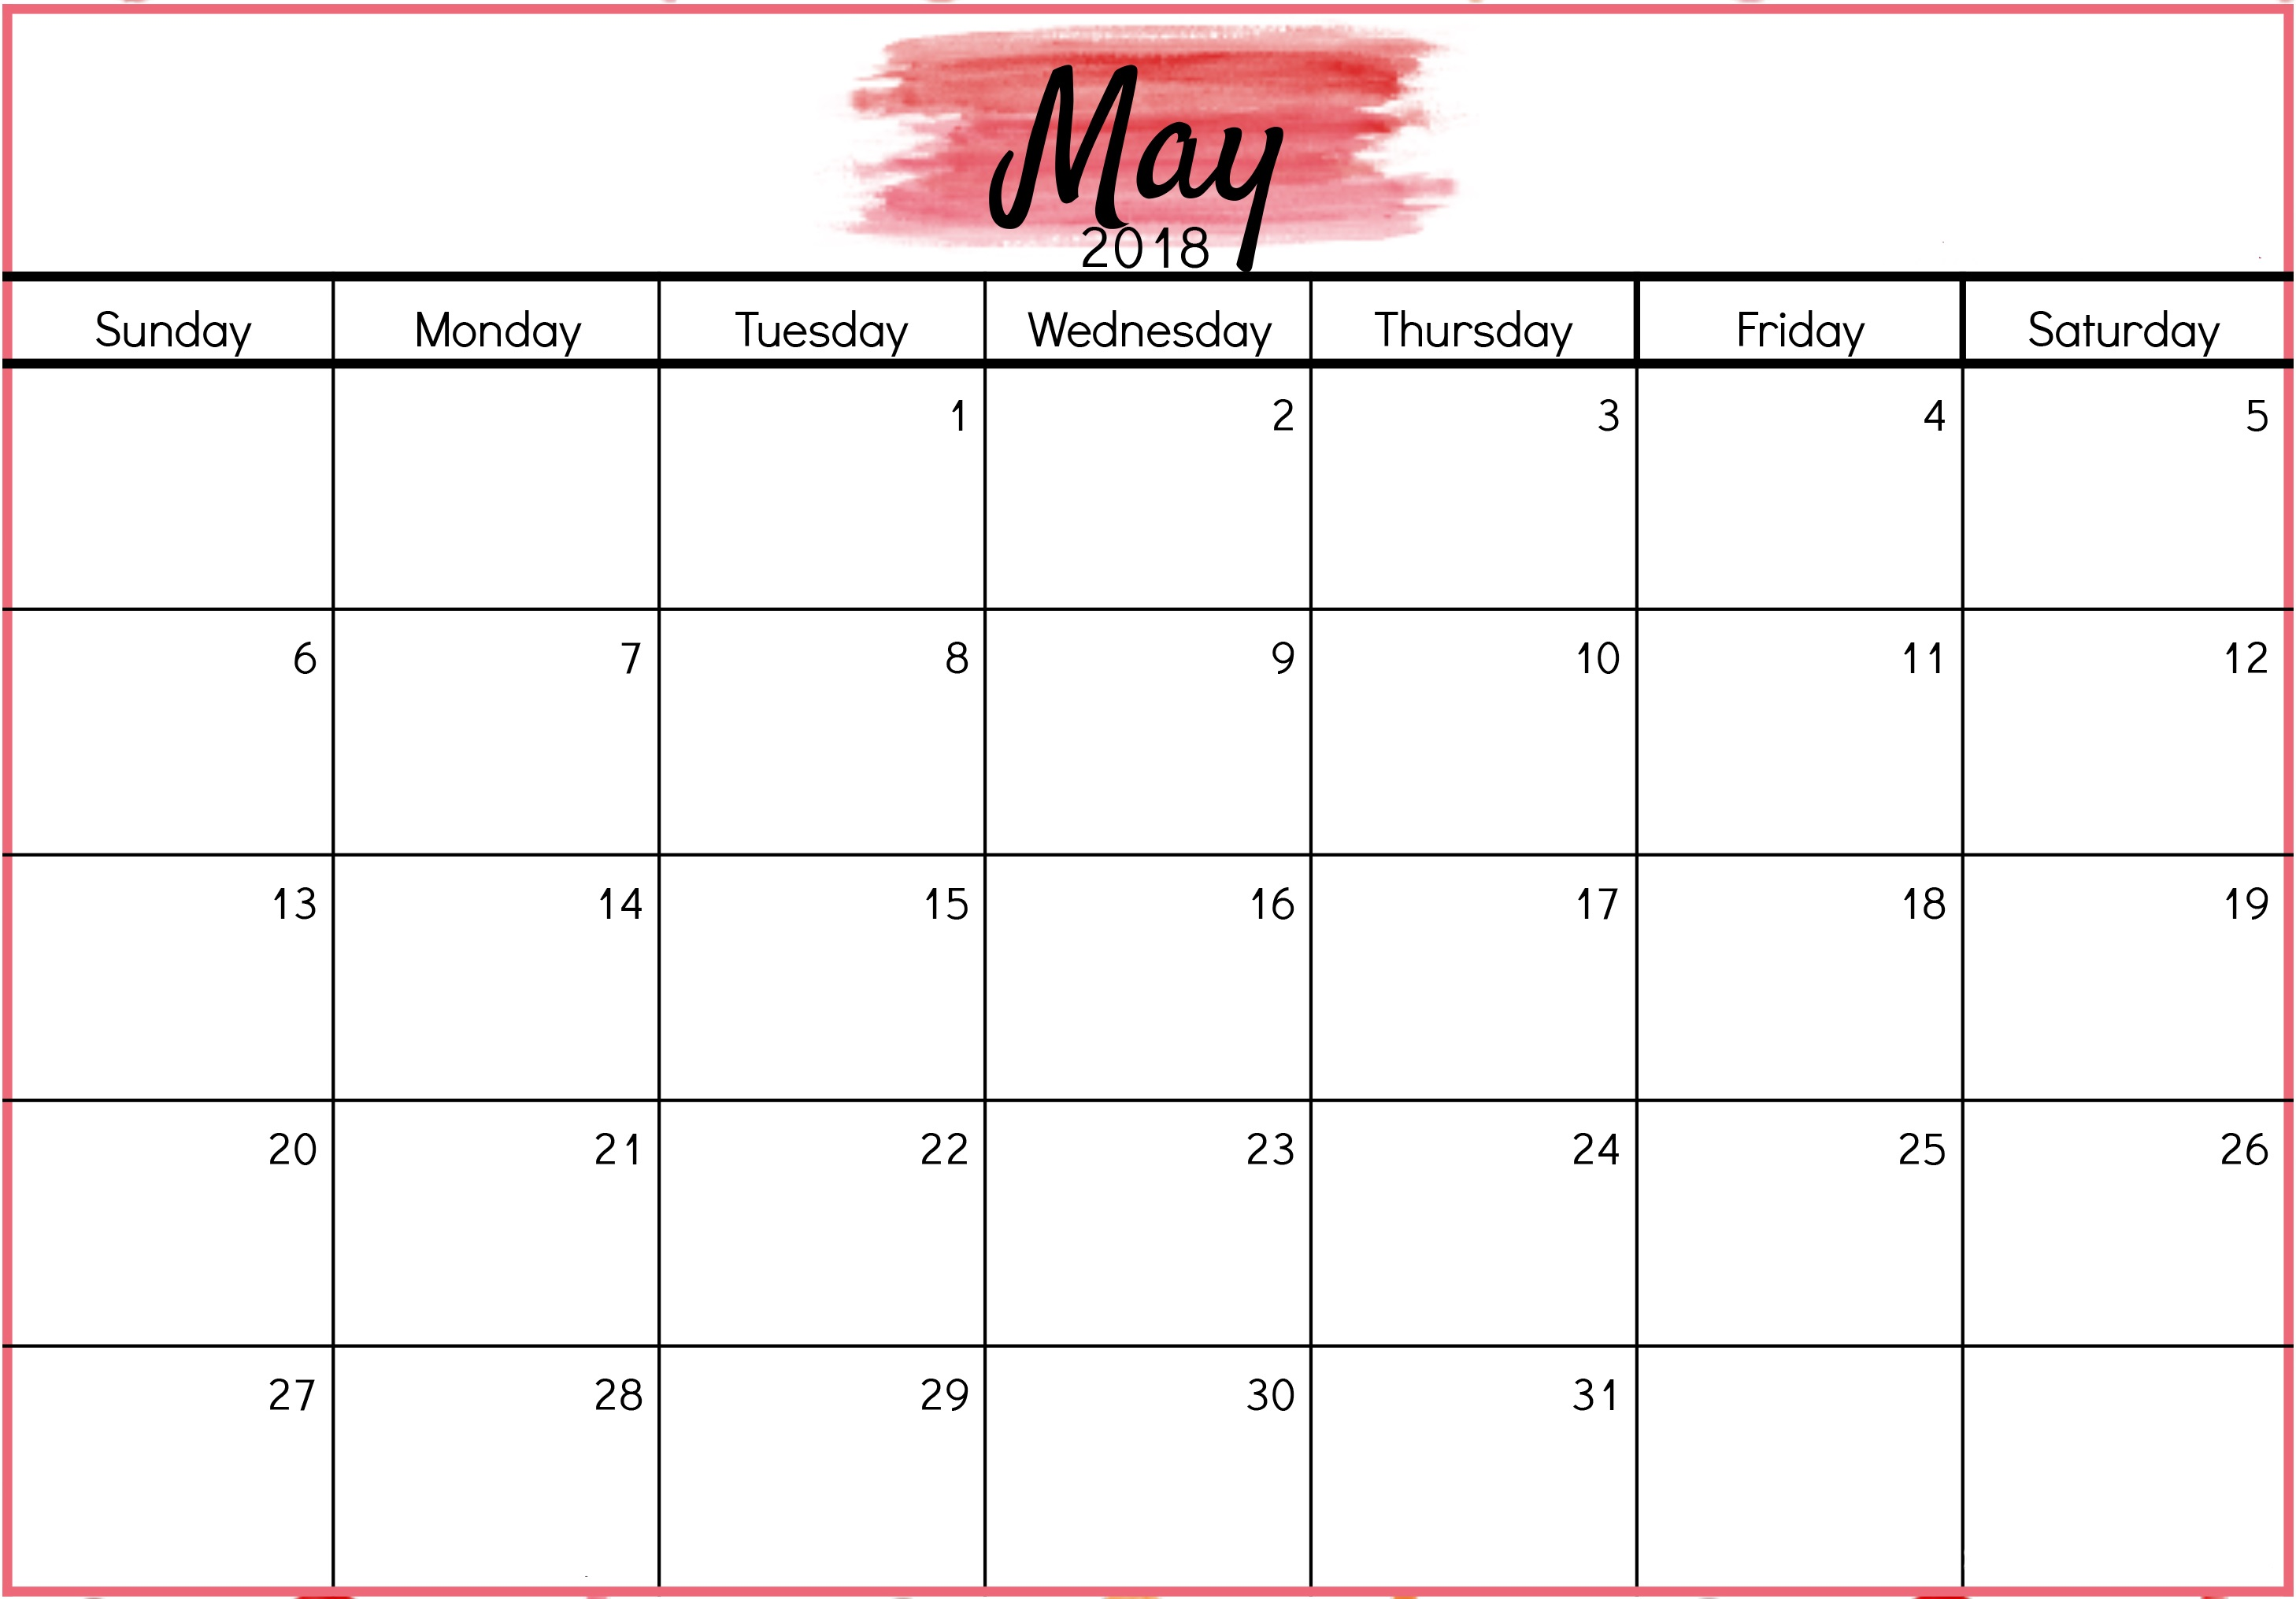 May 2018 Calendar Colorful Design